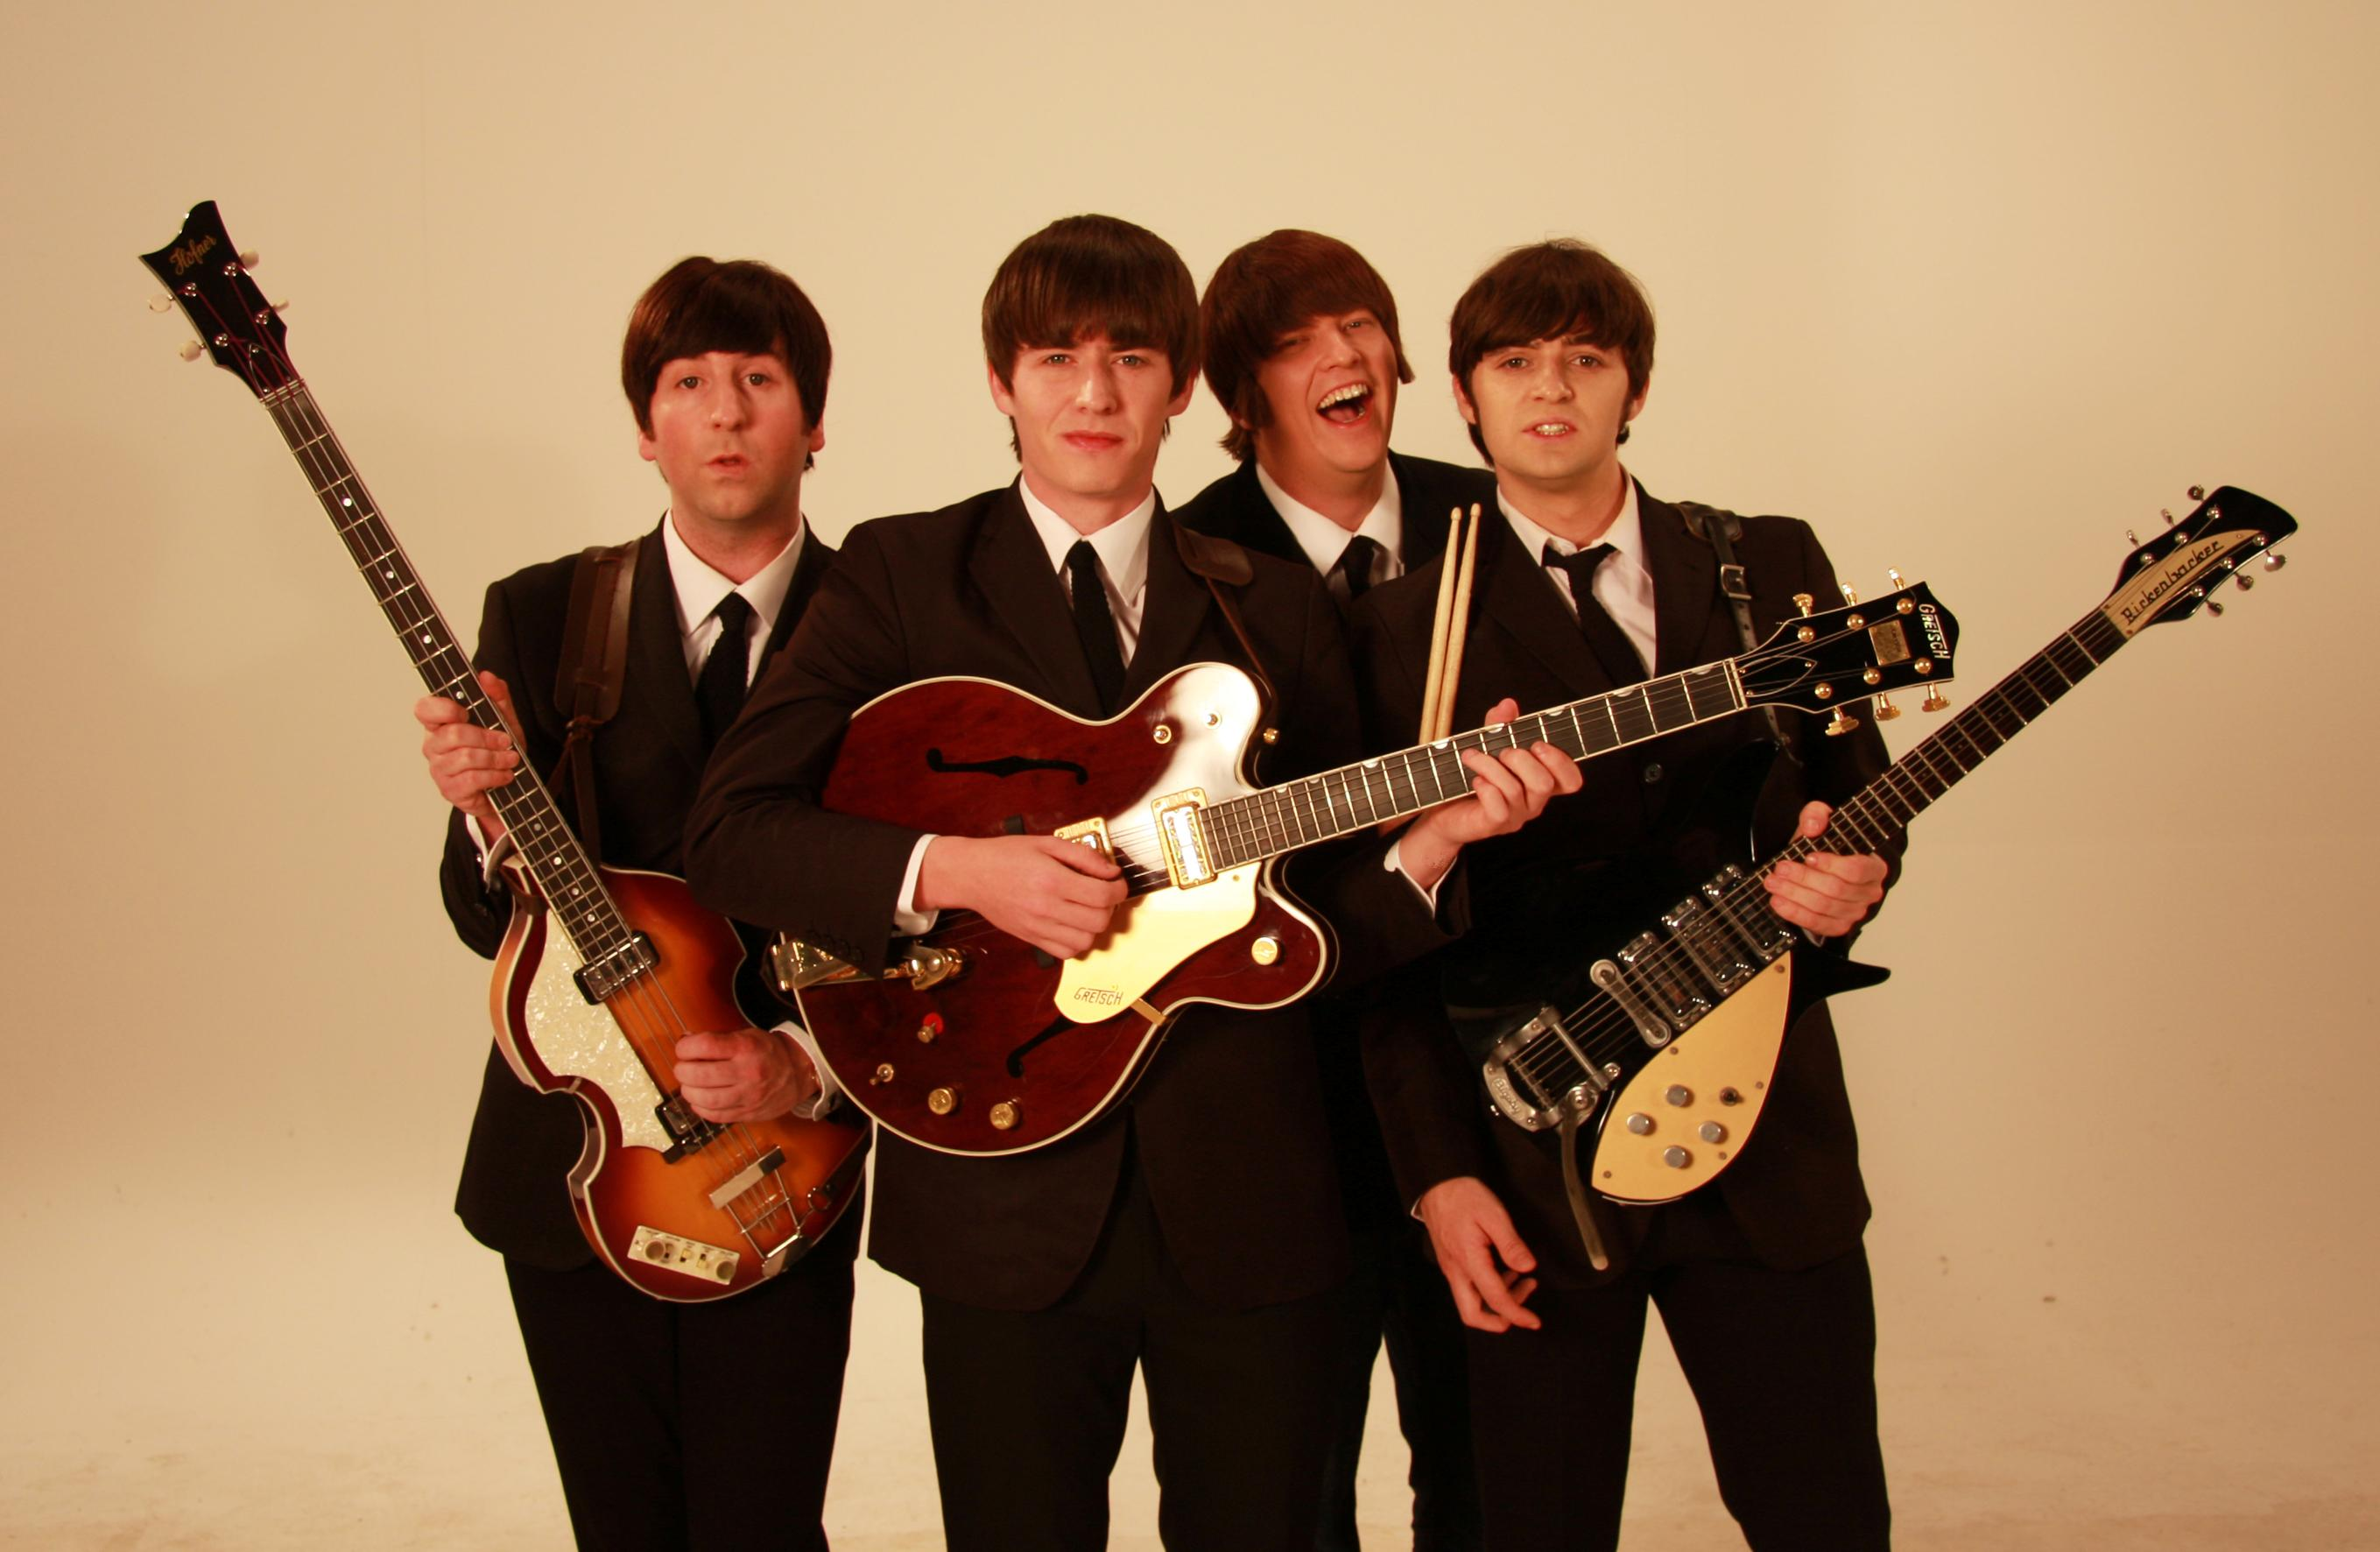 Them Beatles (UK)